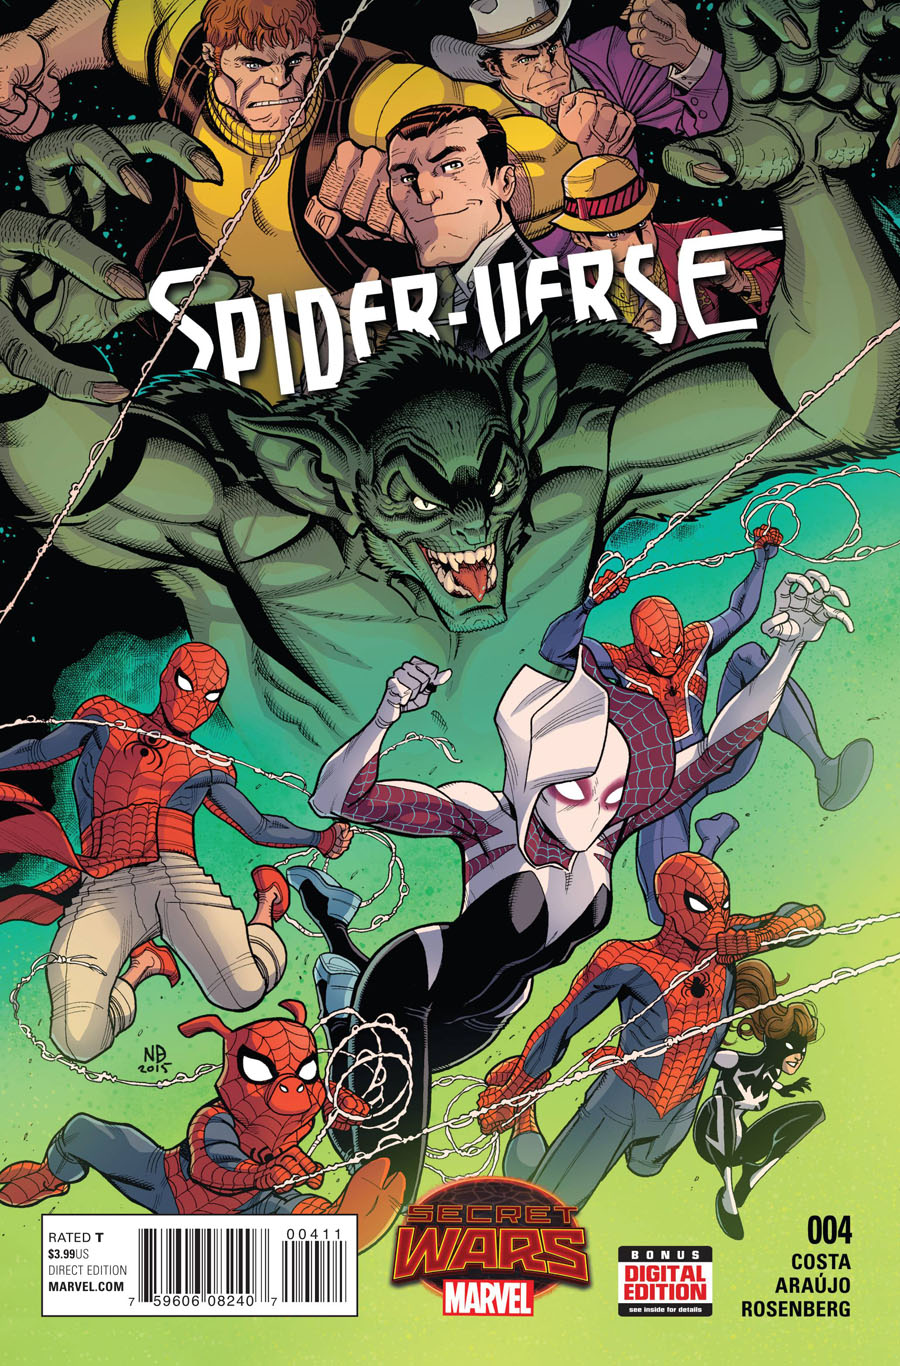 Spider-Verse Vol 2 #4 Cover A Regular Nick Bradshaw Cover (Secret Wars Warzones Tie-In)